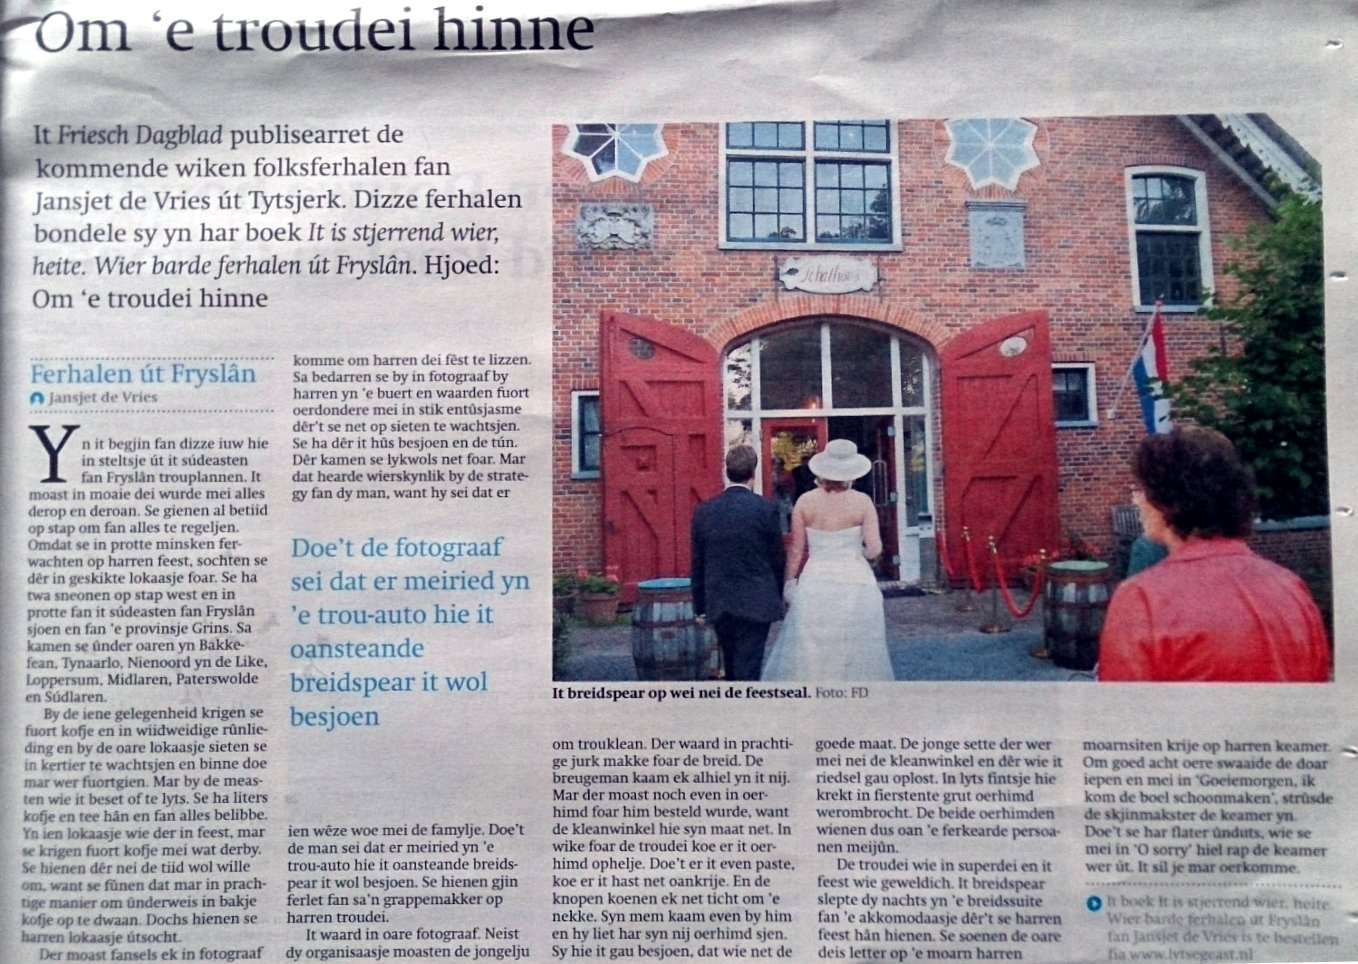 Folksferhalen yn it Friesch Dagblad